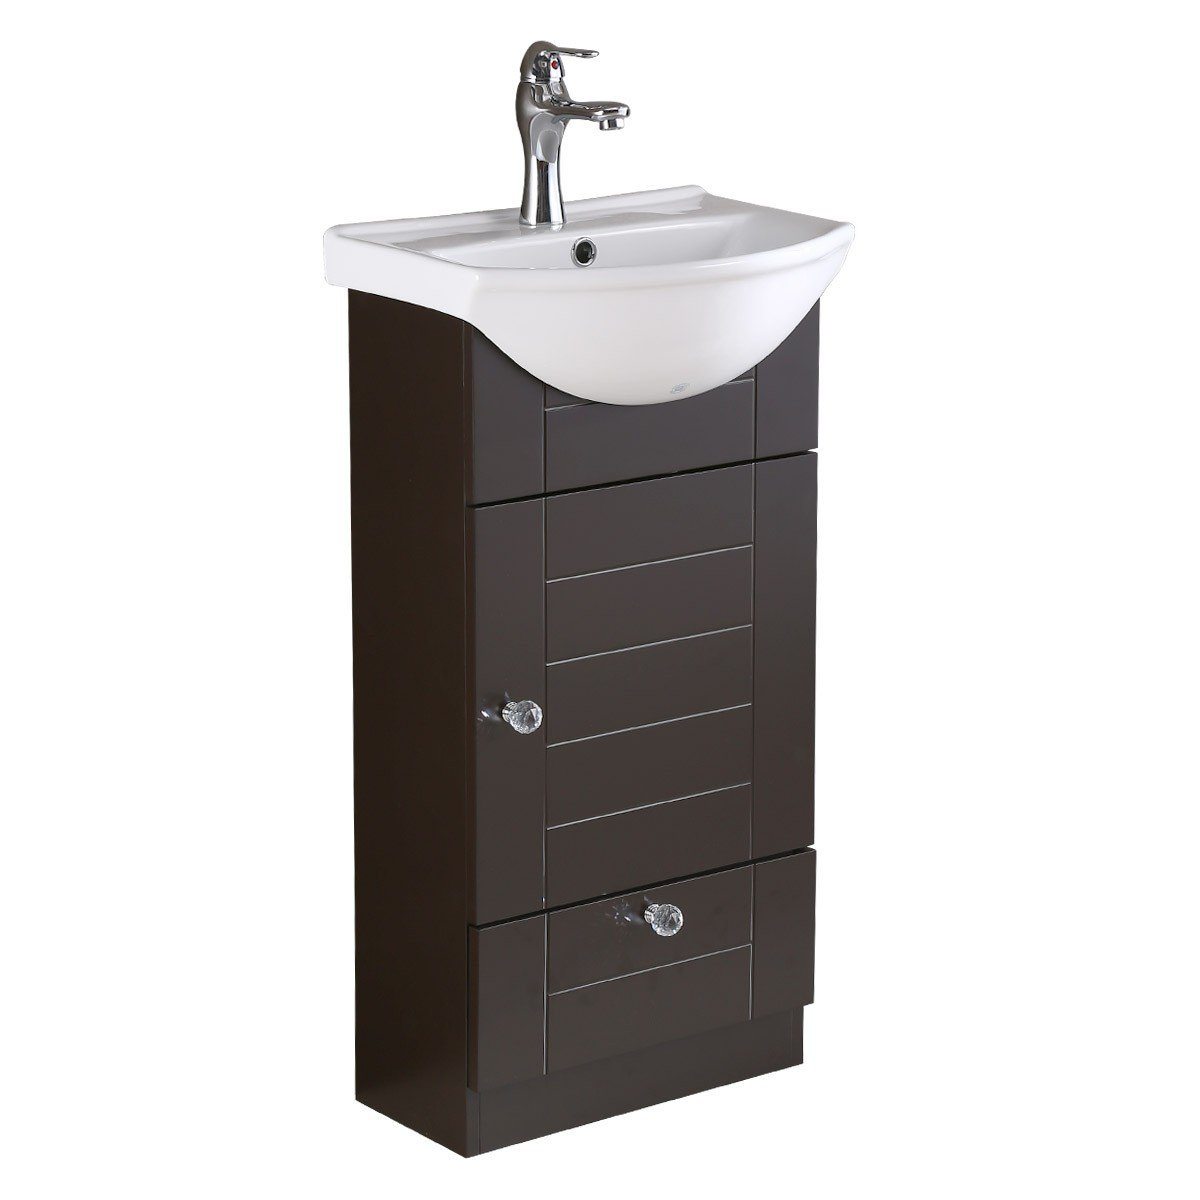 small bathroom vanity with white sink oak cabinet 24166